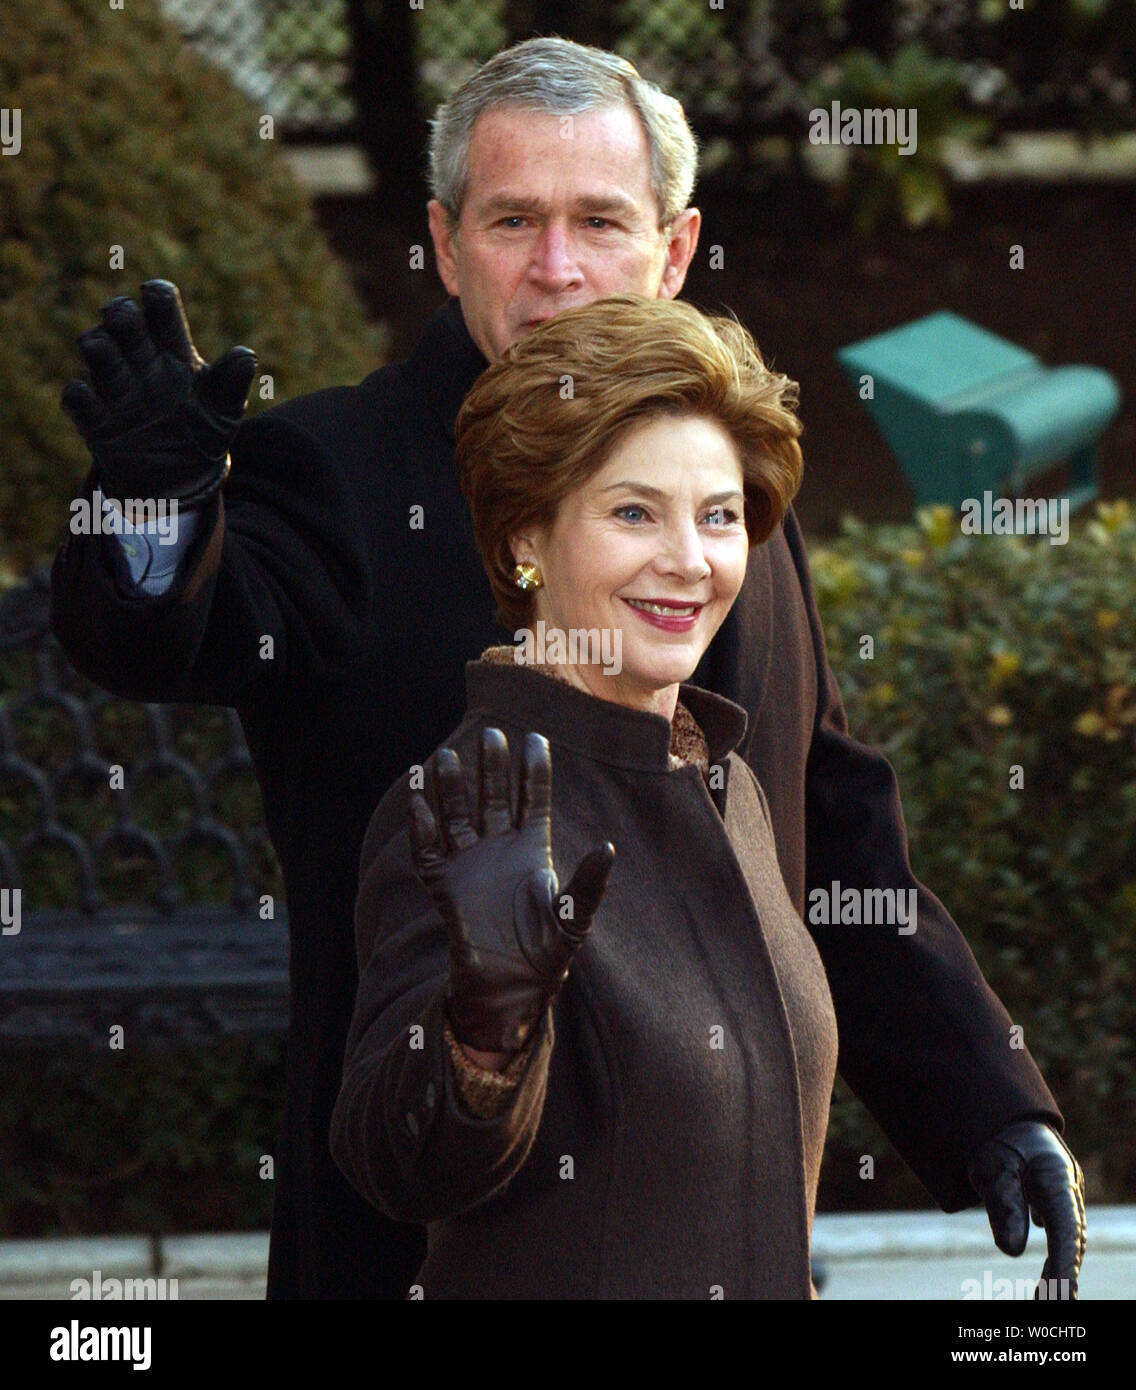 U.S. President George W. Bush and First Lady Laura Bush wave to the press as they prepare to embark on Marine One on the South Lawn of the White House on Feb. 20, 2005. Bush is en route to Brussels, Belgium, for meetings with world leaders.   (UPI Photo/Roger L. Wollenberg) Stock Photo